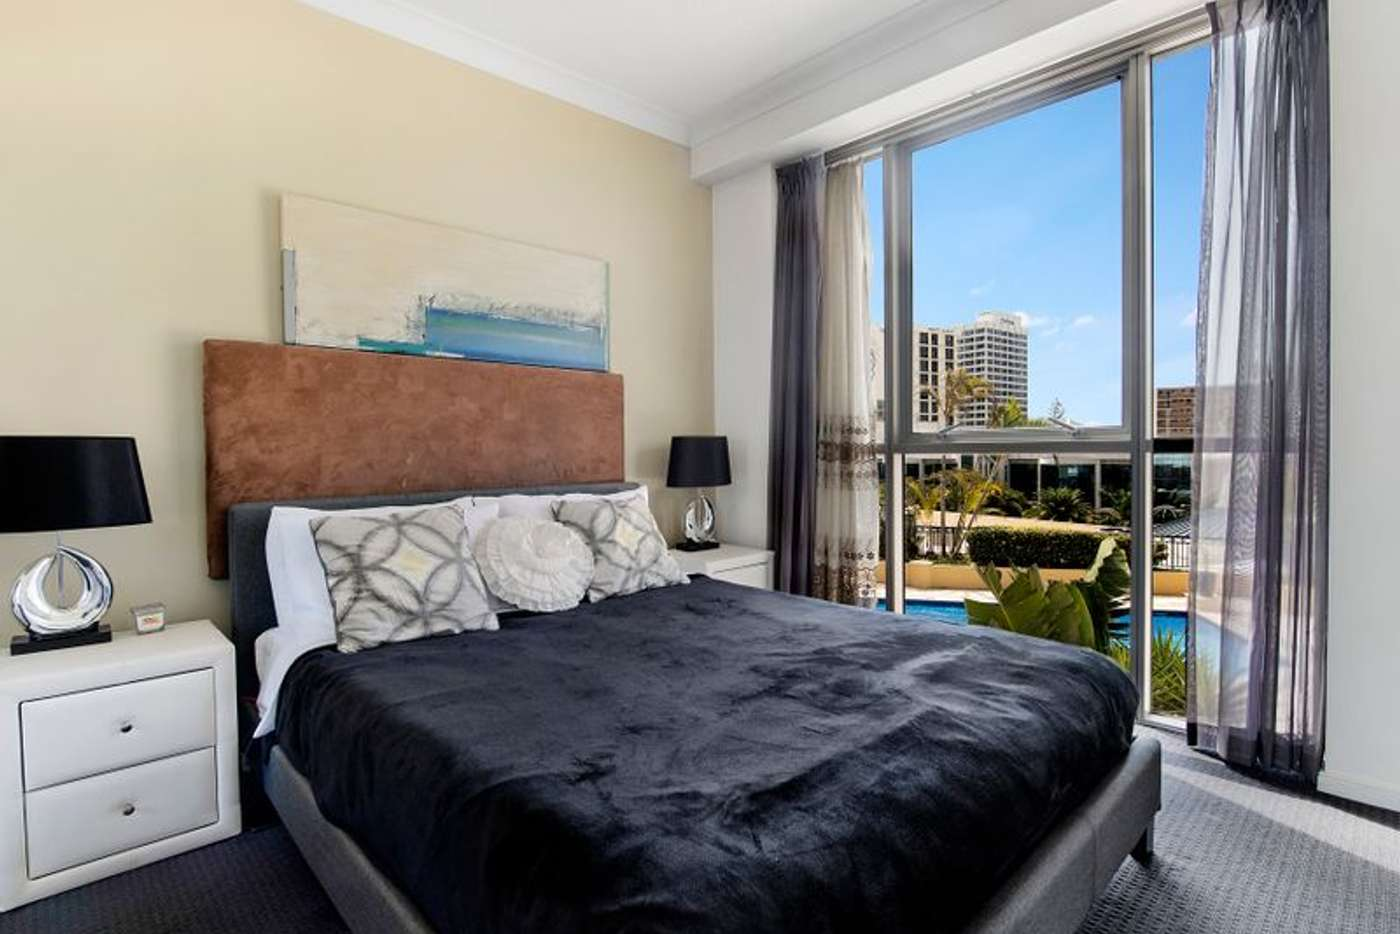 Sixth view of Homely apartment listing, 1035/23 Ferny Avenue, Surfers Paradise QLD 4217